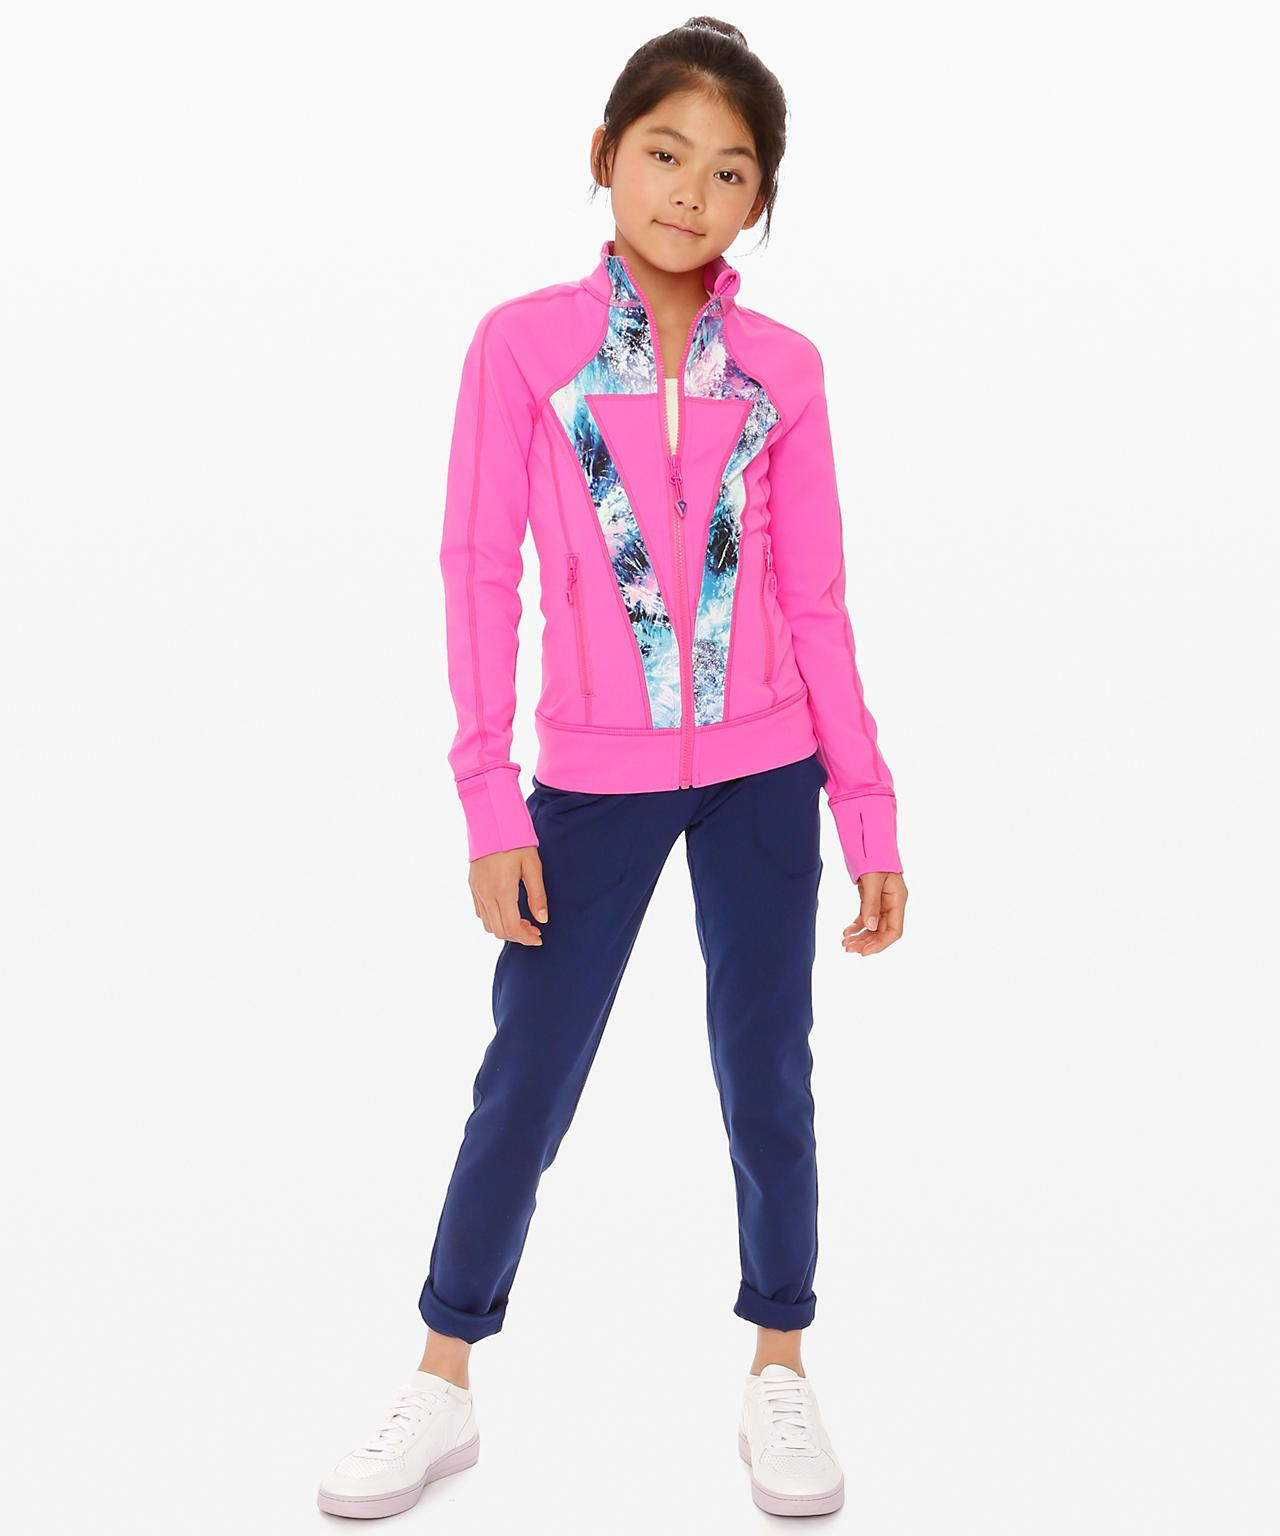 Shop The Perfect Your Practice Jacket Girls Jackets Outerwear Stretch After Practice In This Sweat Wick Girls Jacket Outerwear Jackets Technical Clothing [ 1536 x 1280 Pixel ]